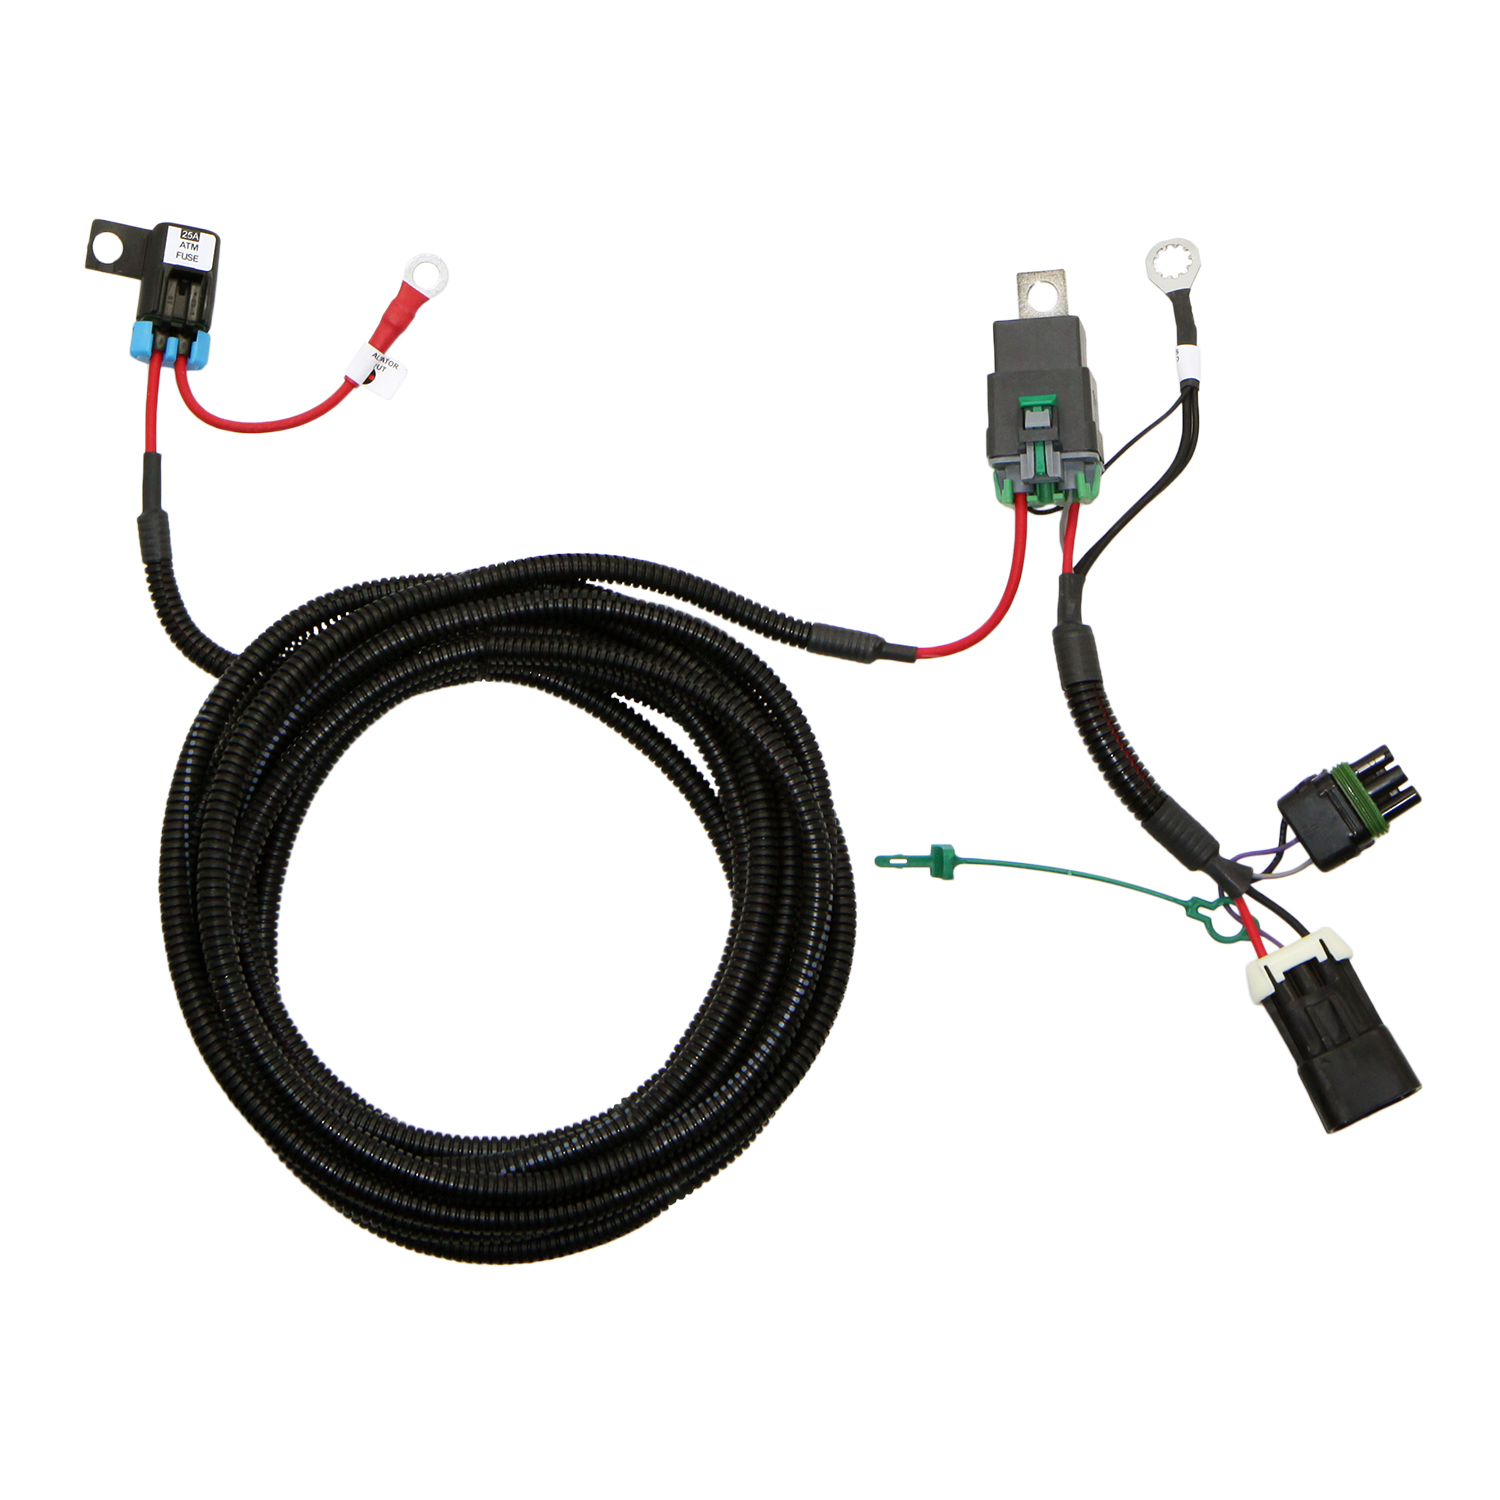 BLT1 Fuel Pump Wiring Harness HD* (FPWH-018): Fuel Pump - Hotwire / Upgrade  Harnesses | RacetronixRacetronix